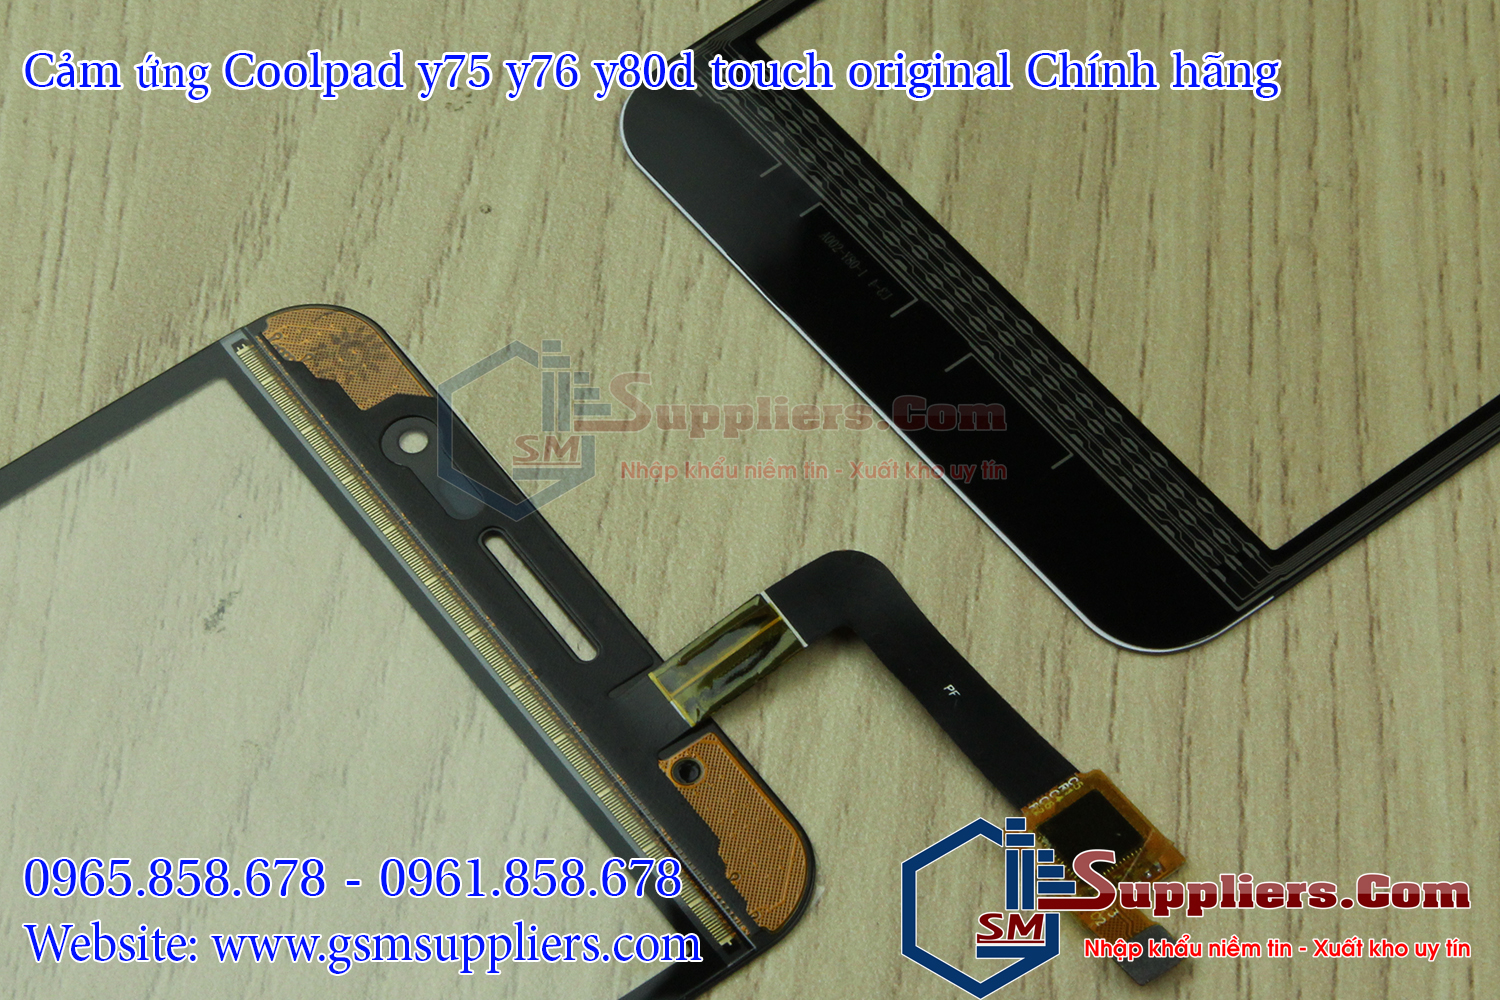 cam ung coolpad y75 y76 y80d touch original chinh hang 3